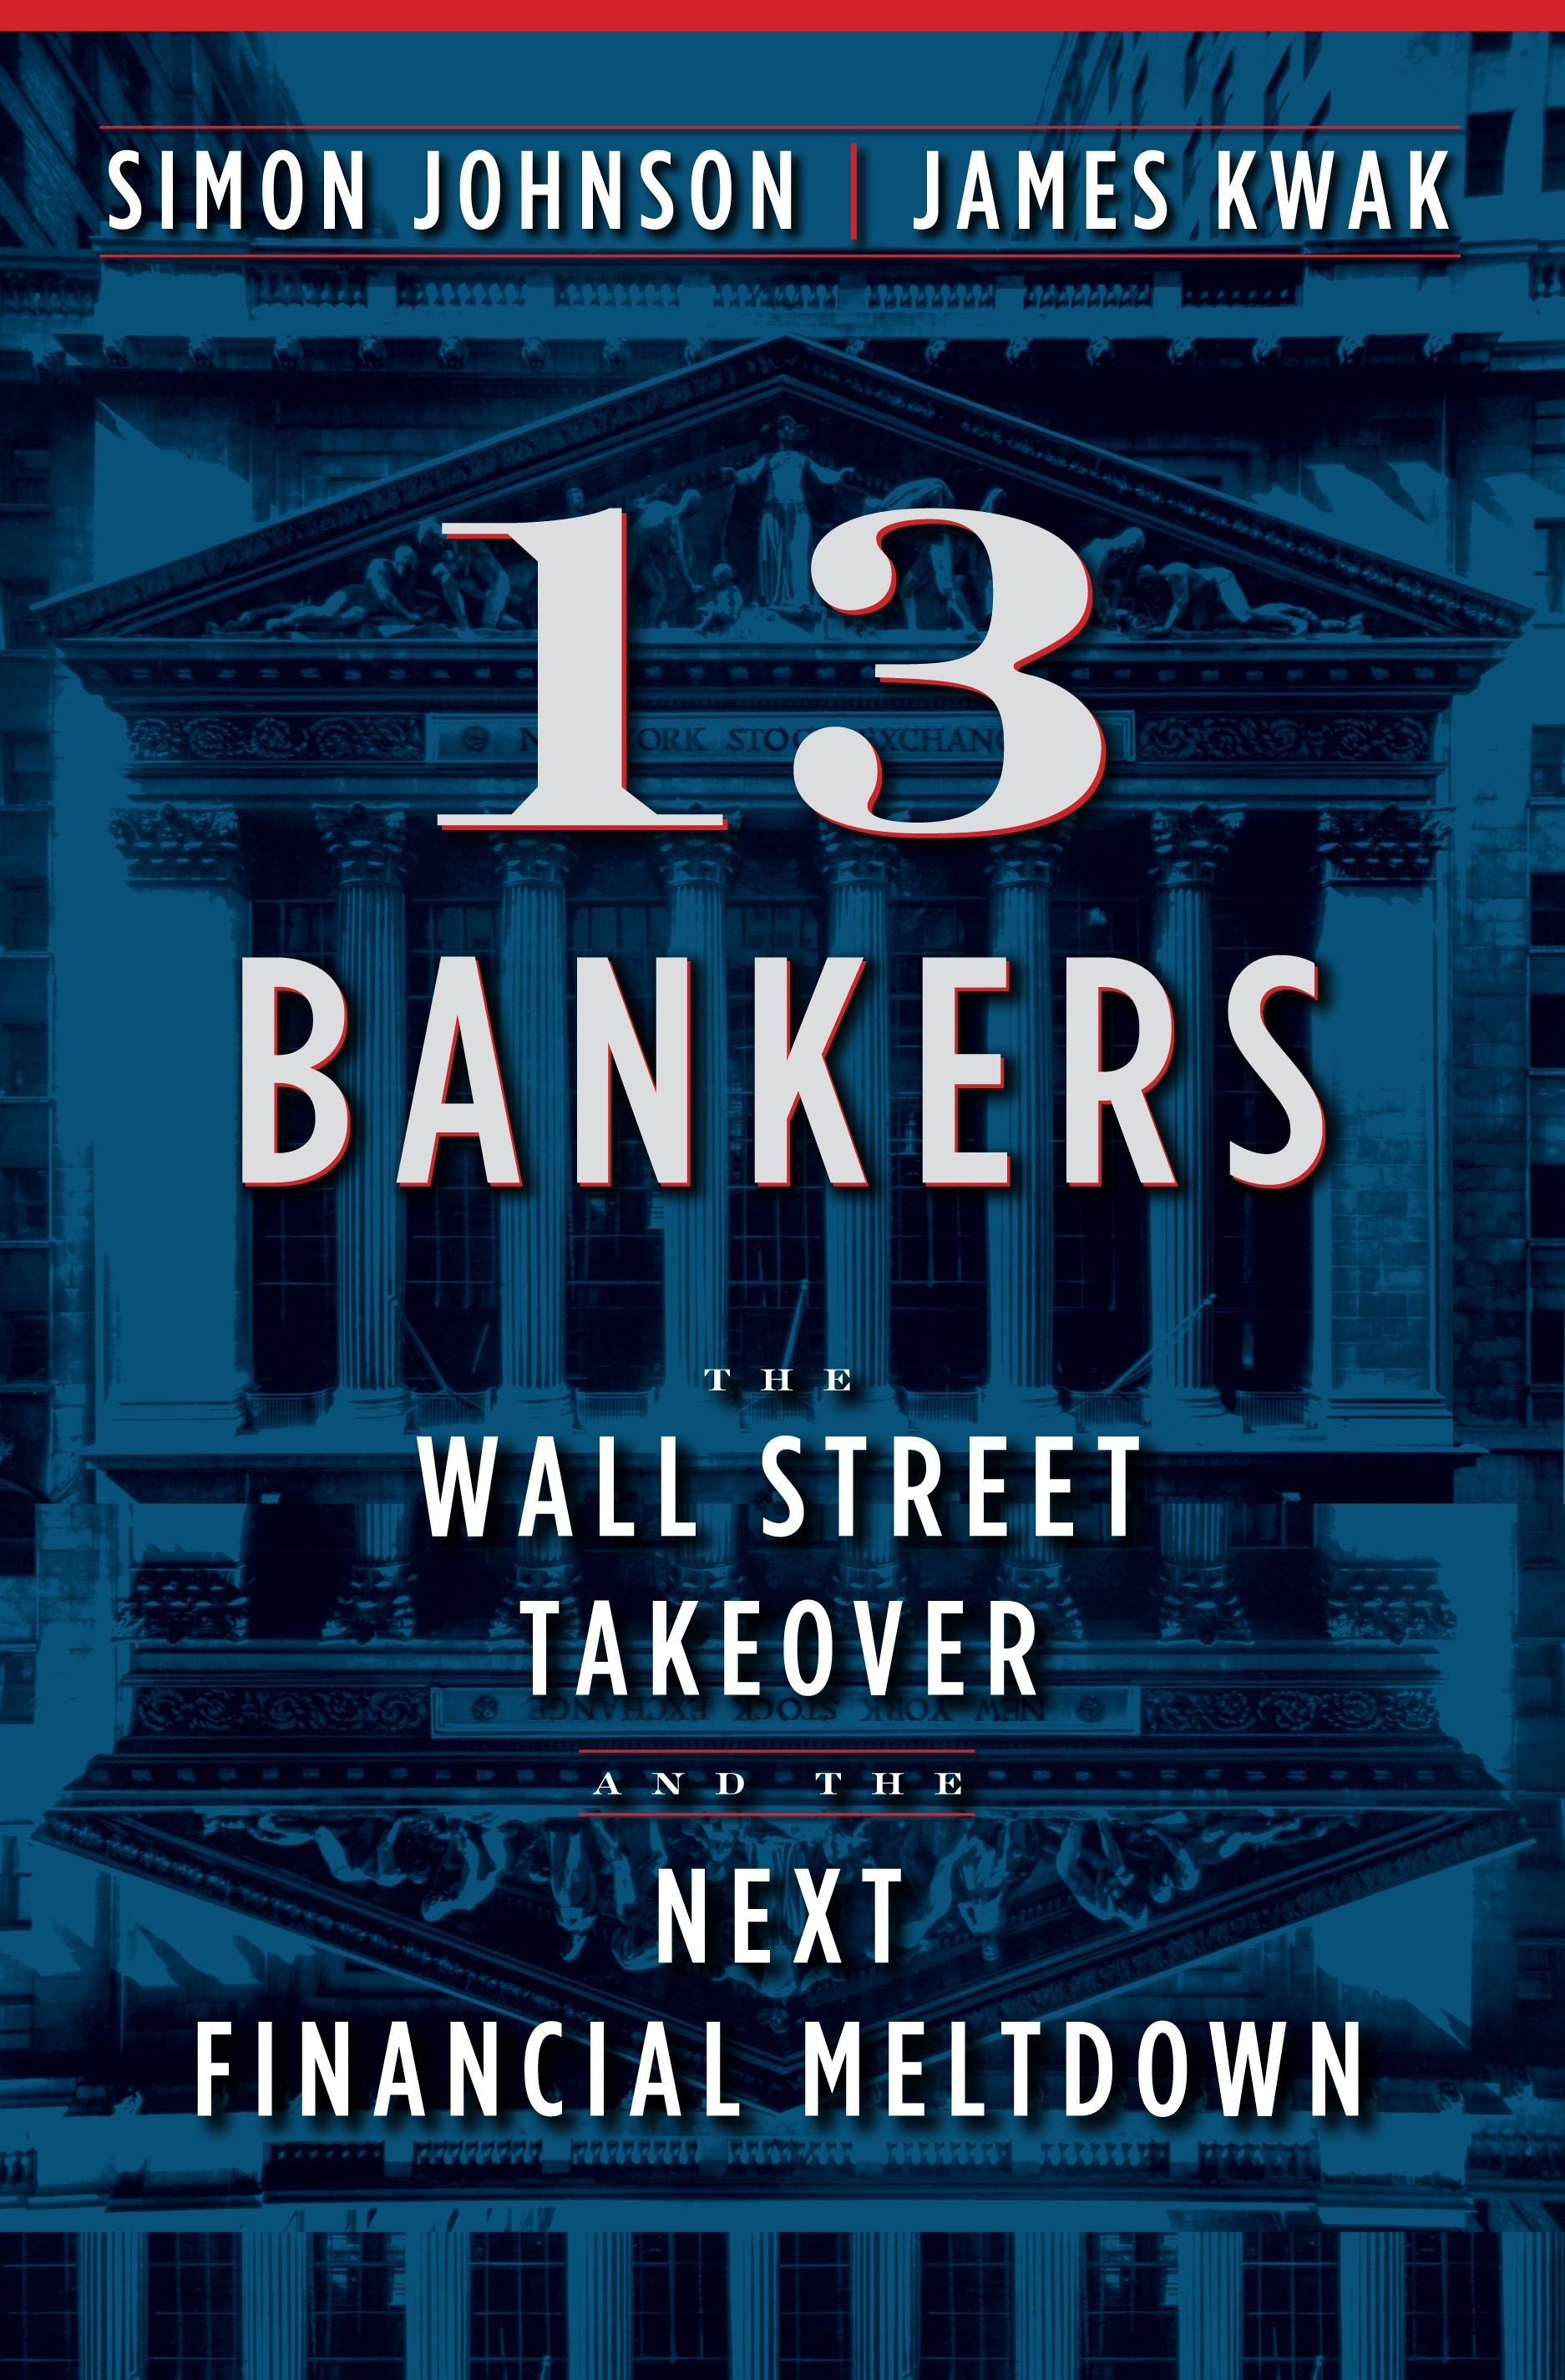 Thirteen Bankers | Books I've read in 2012 | Financial institutions